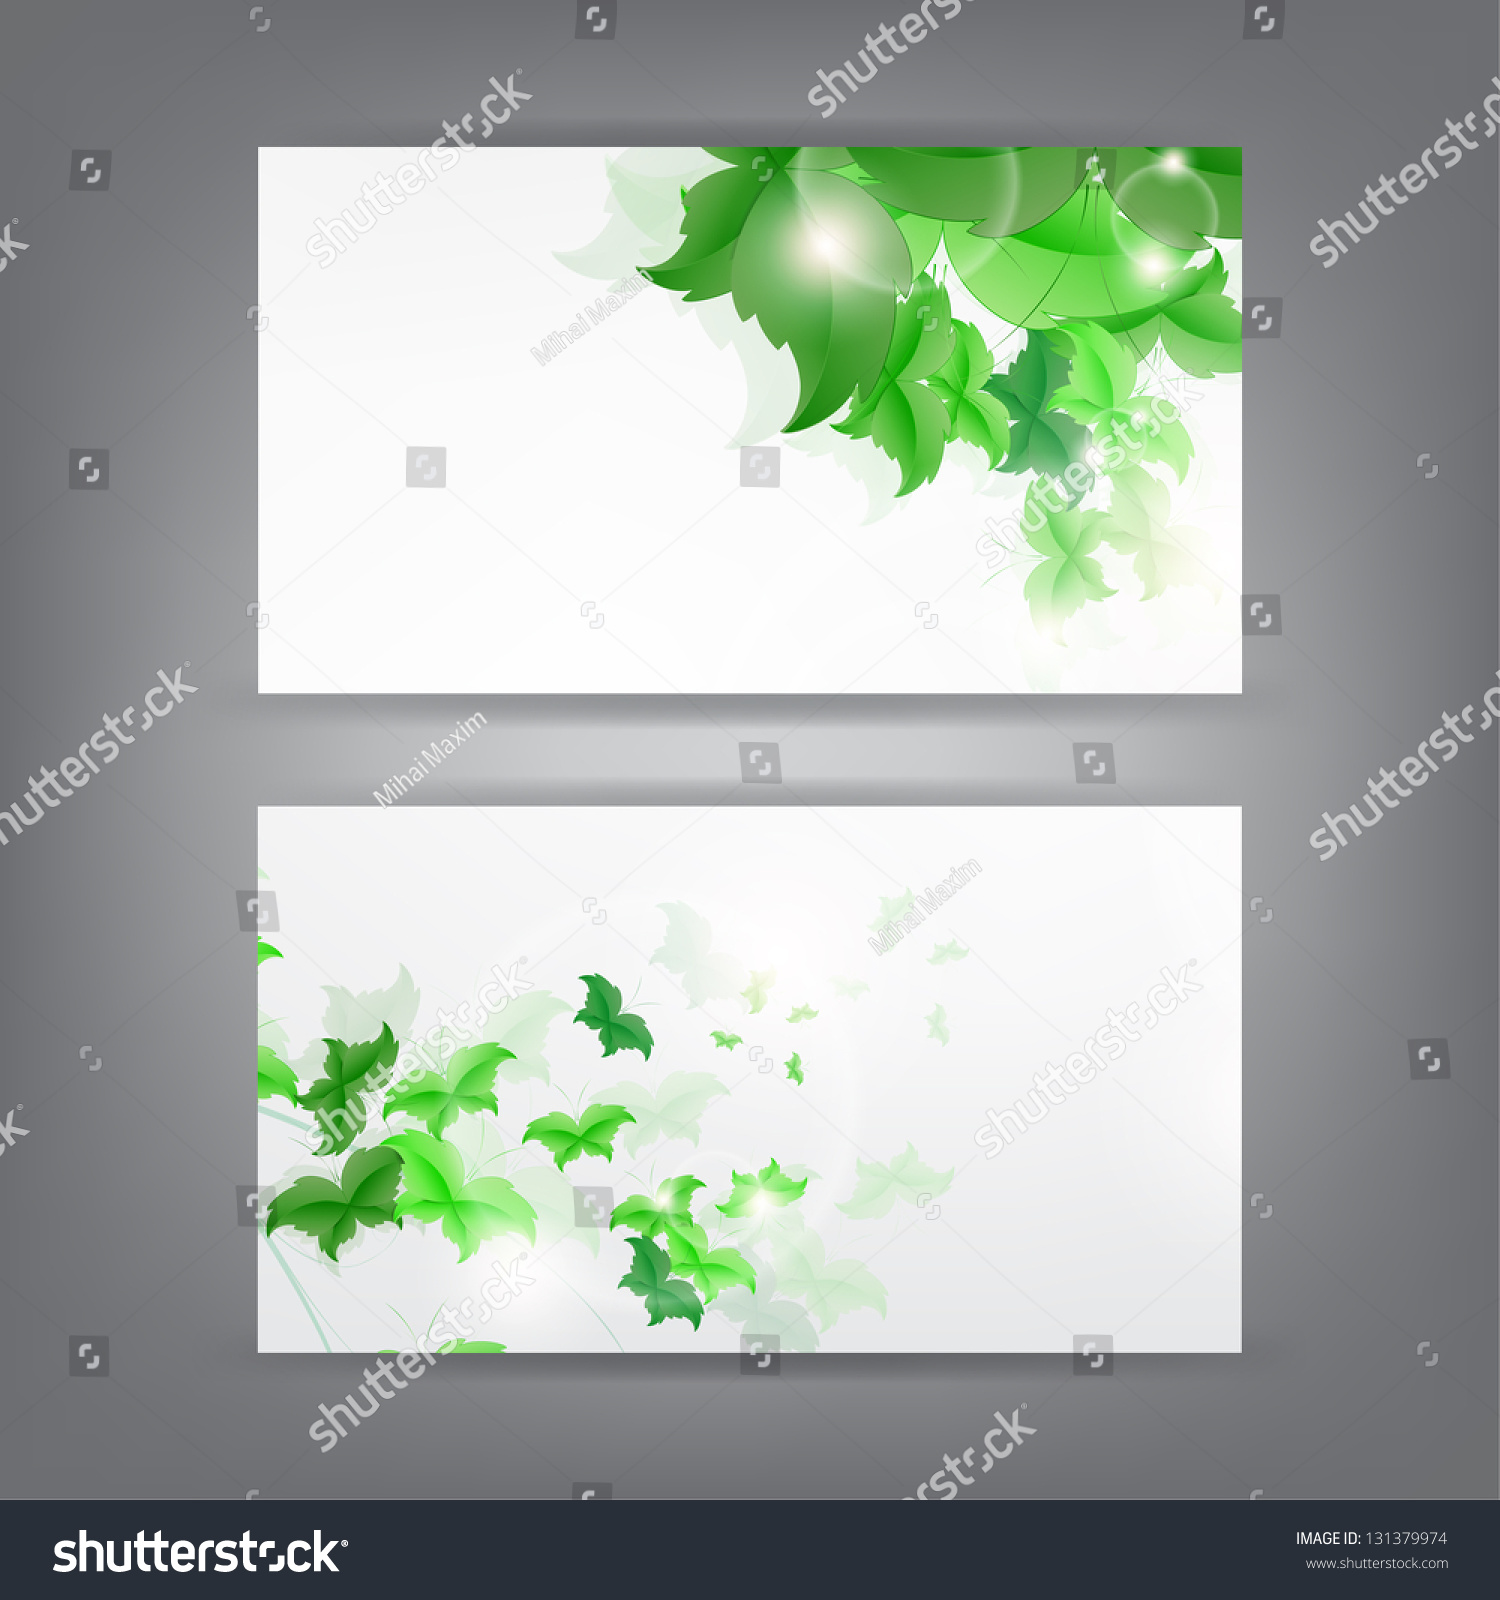 Environment Theme Business Card Template Green Stock Illustration ...